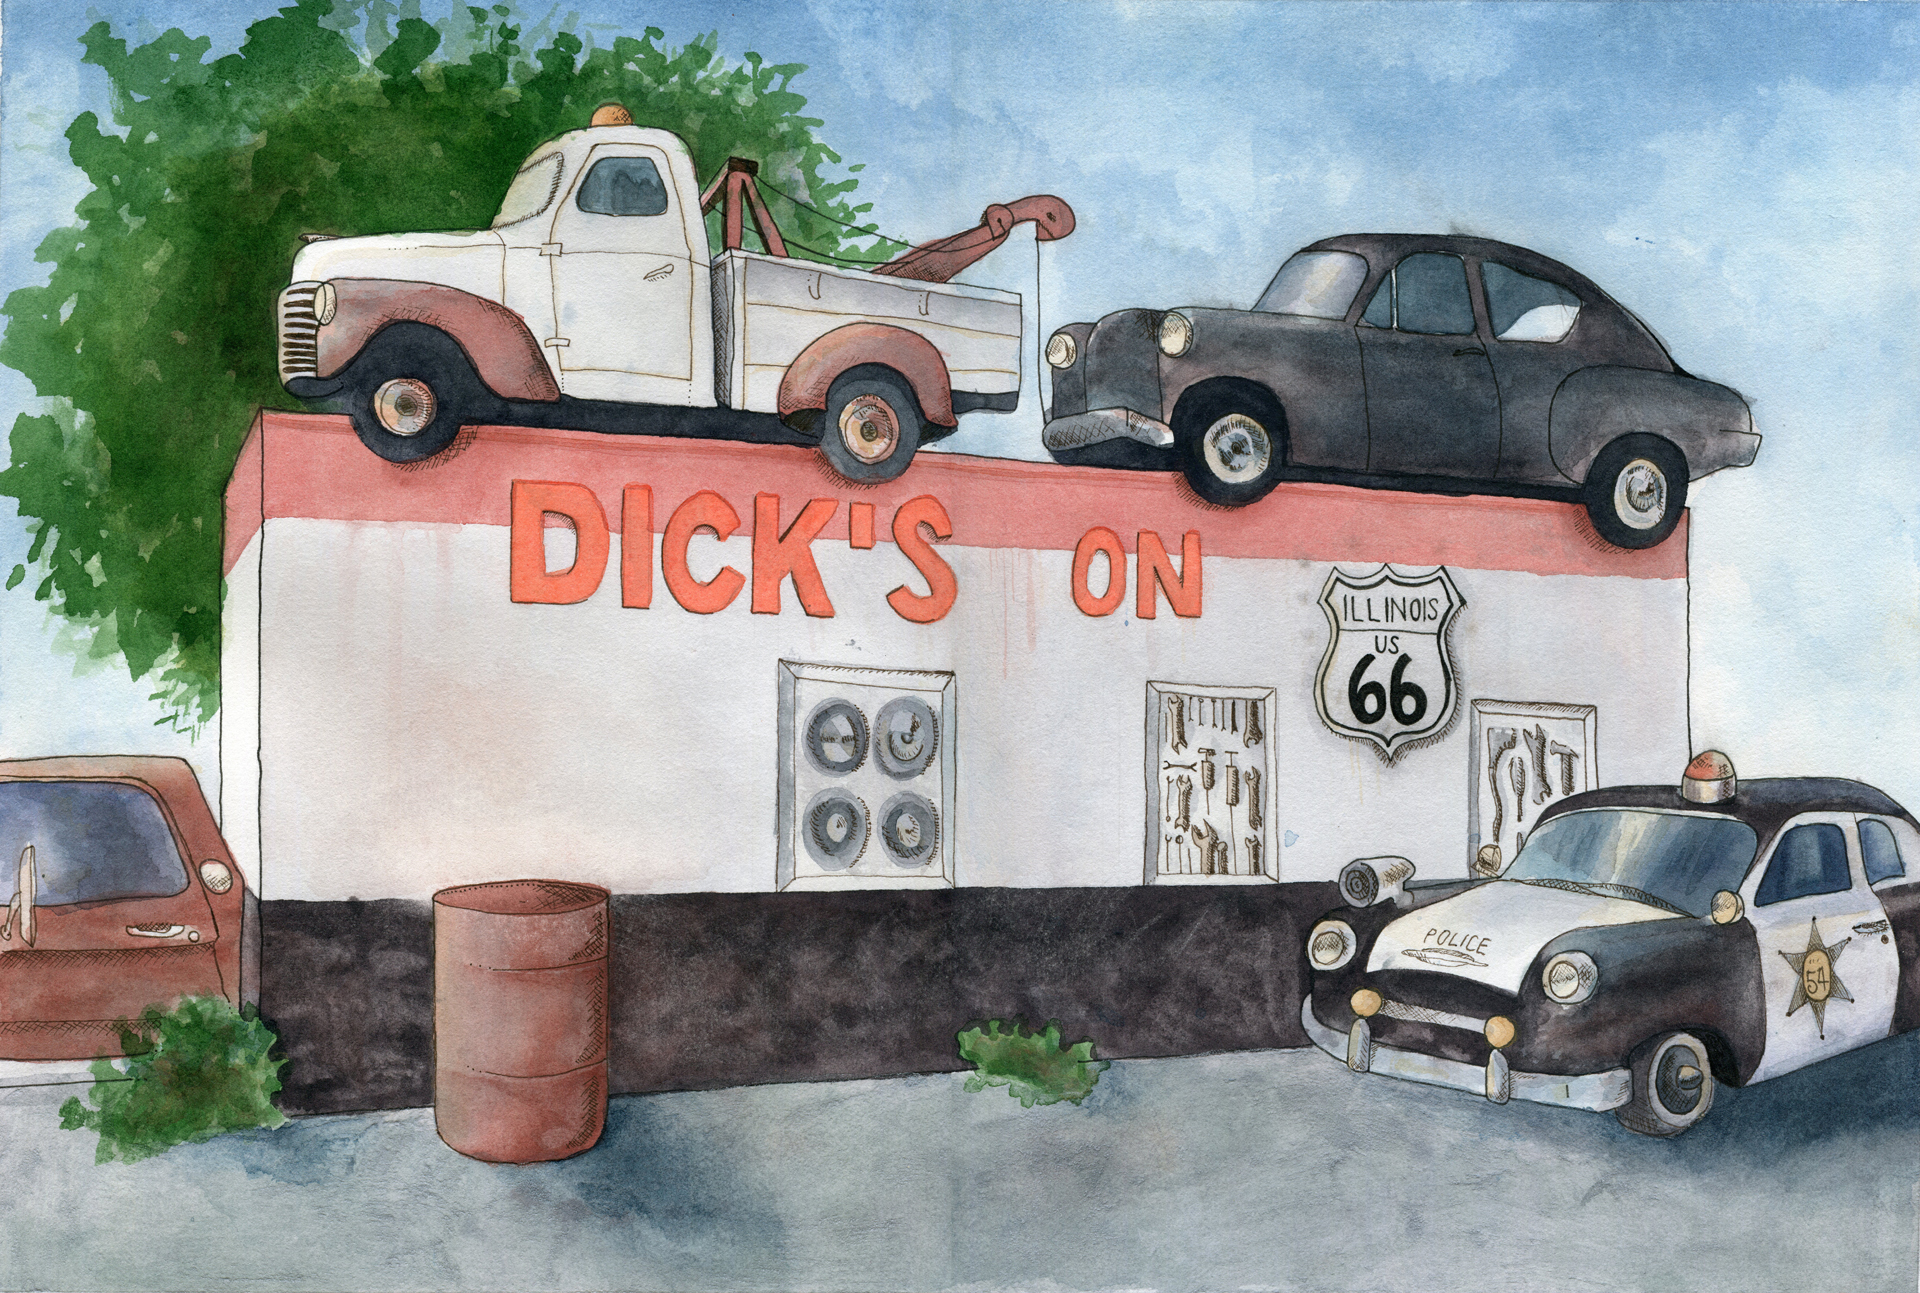 Dicks Towing on Rt. 66